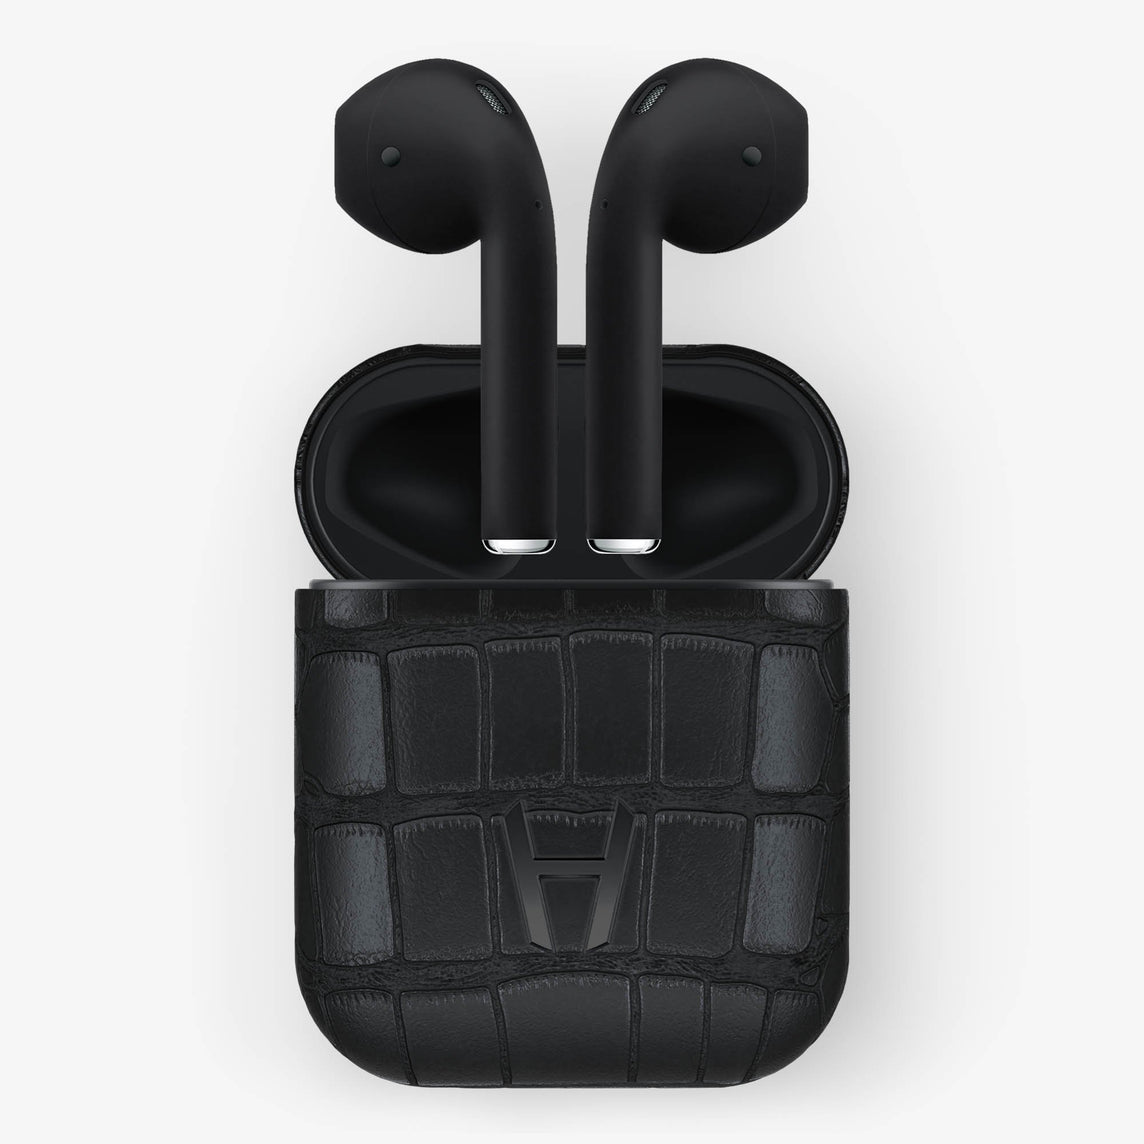 Alligator Hadoro AirPods | Black - Black without-personalization